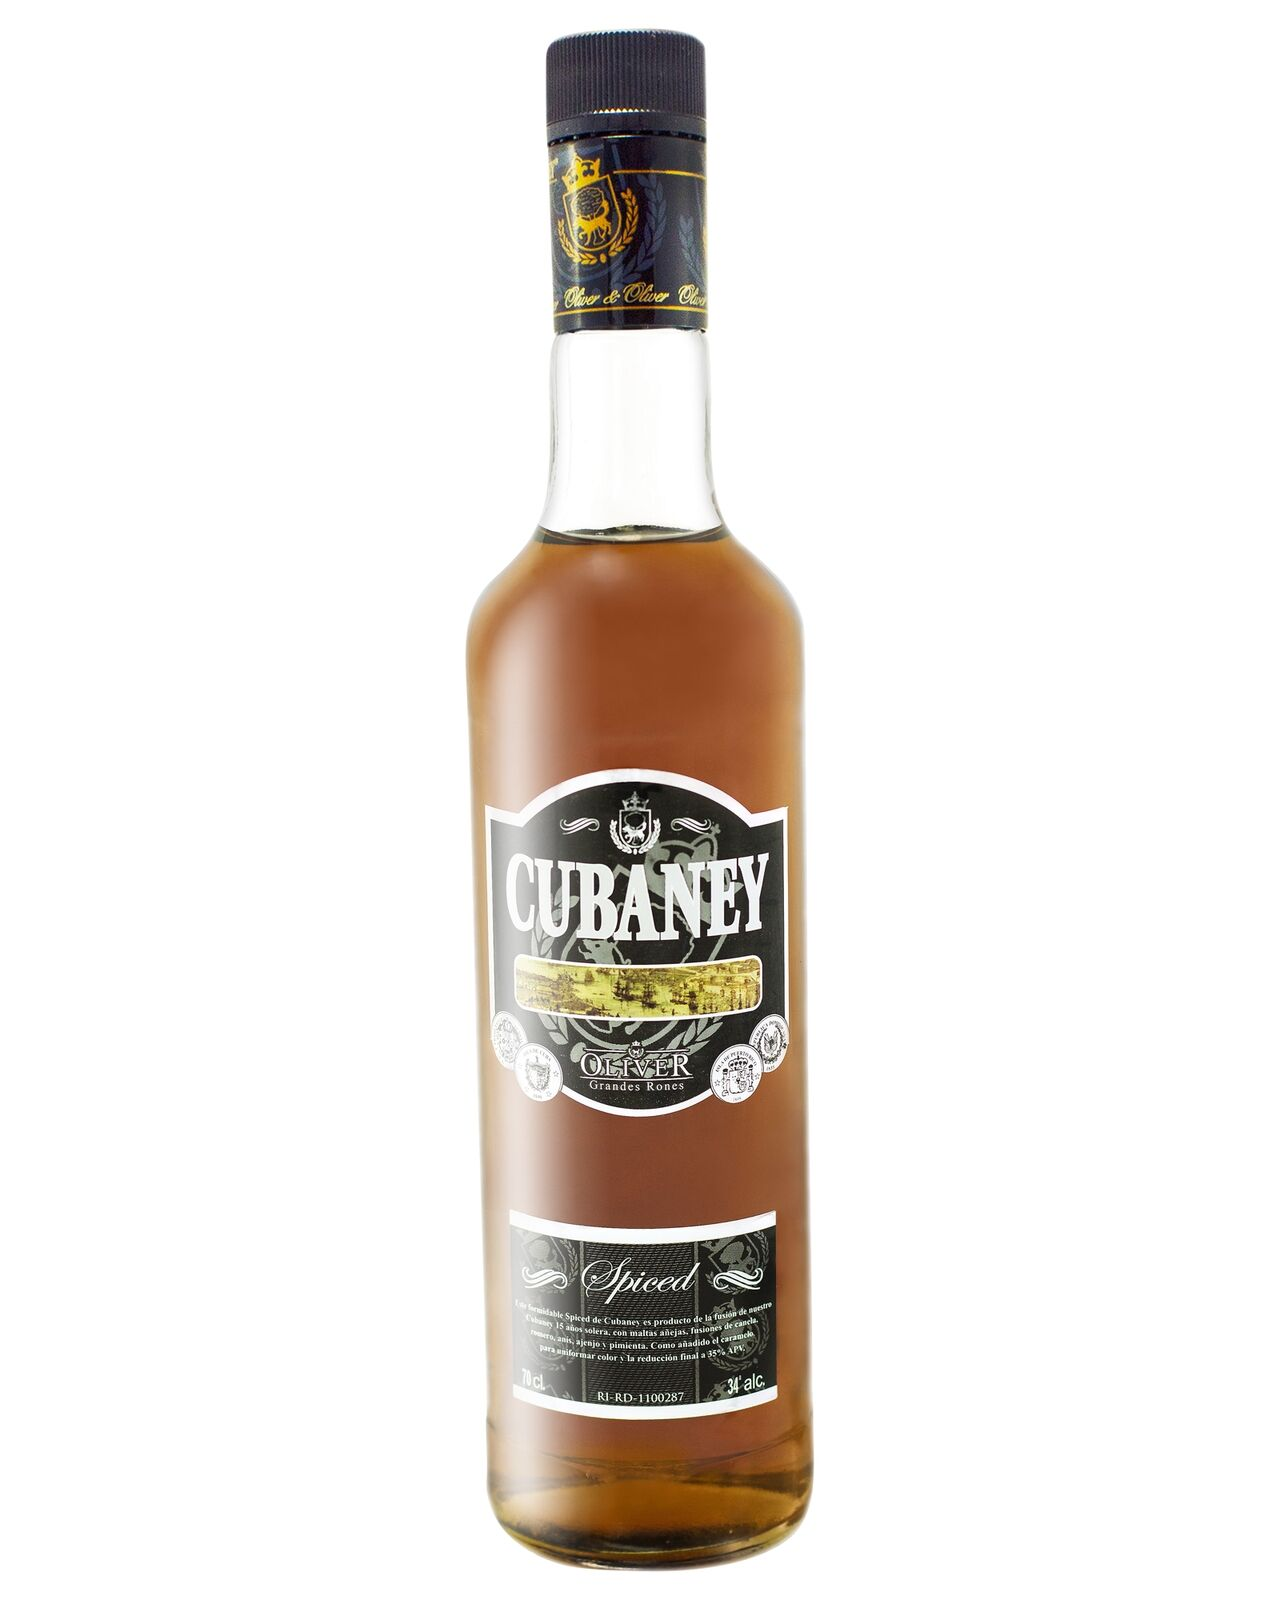 Cubaney Spiced 700mL case of 6 Rum Spiced Rum